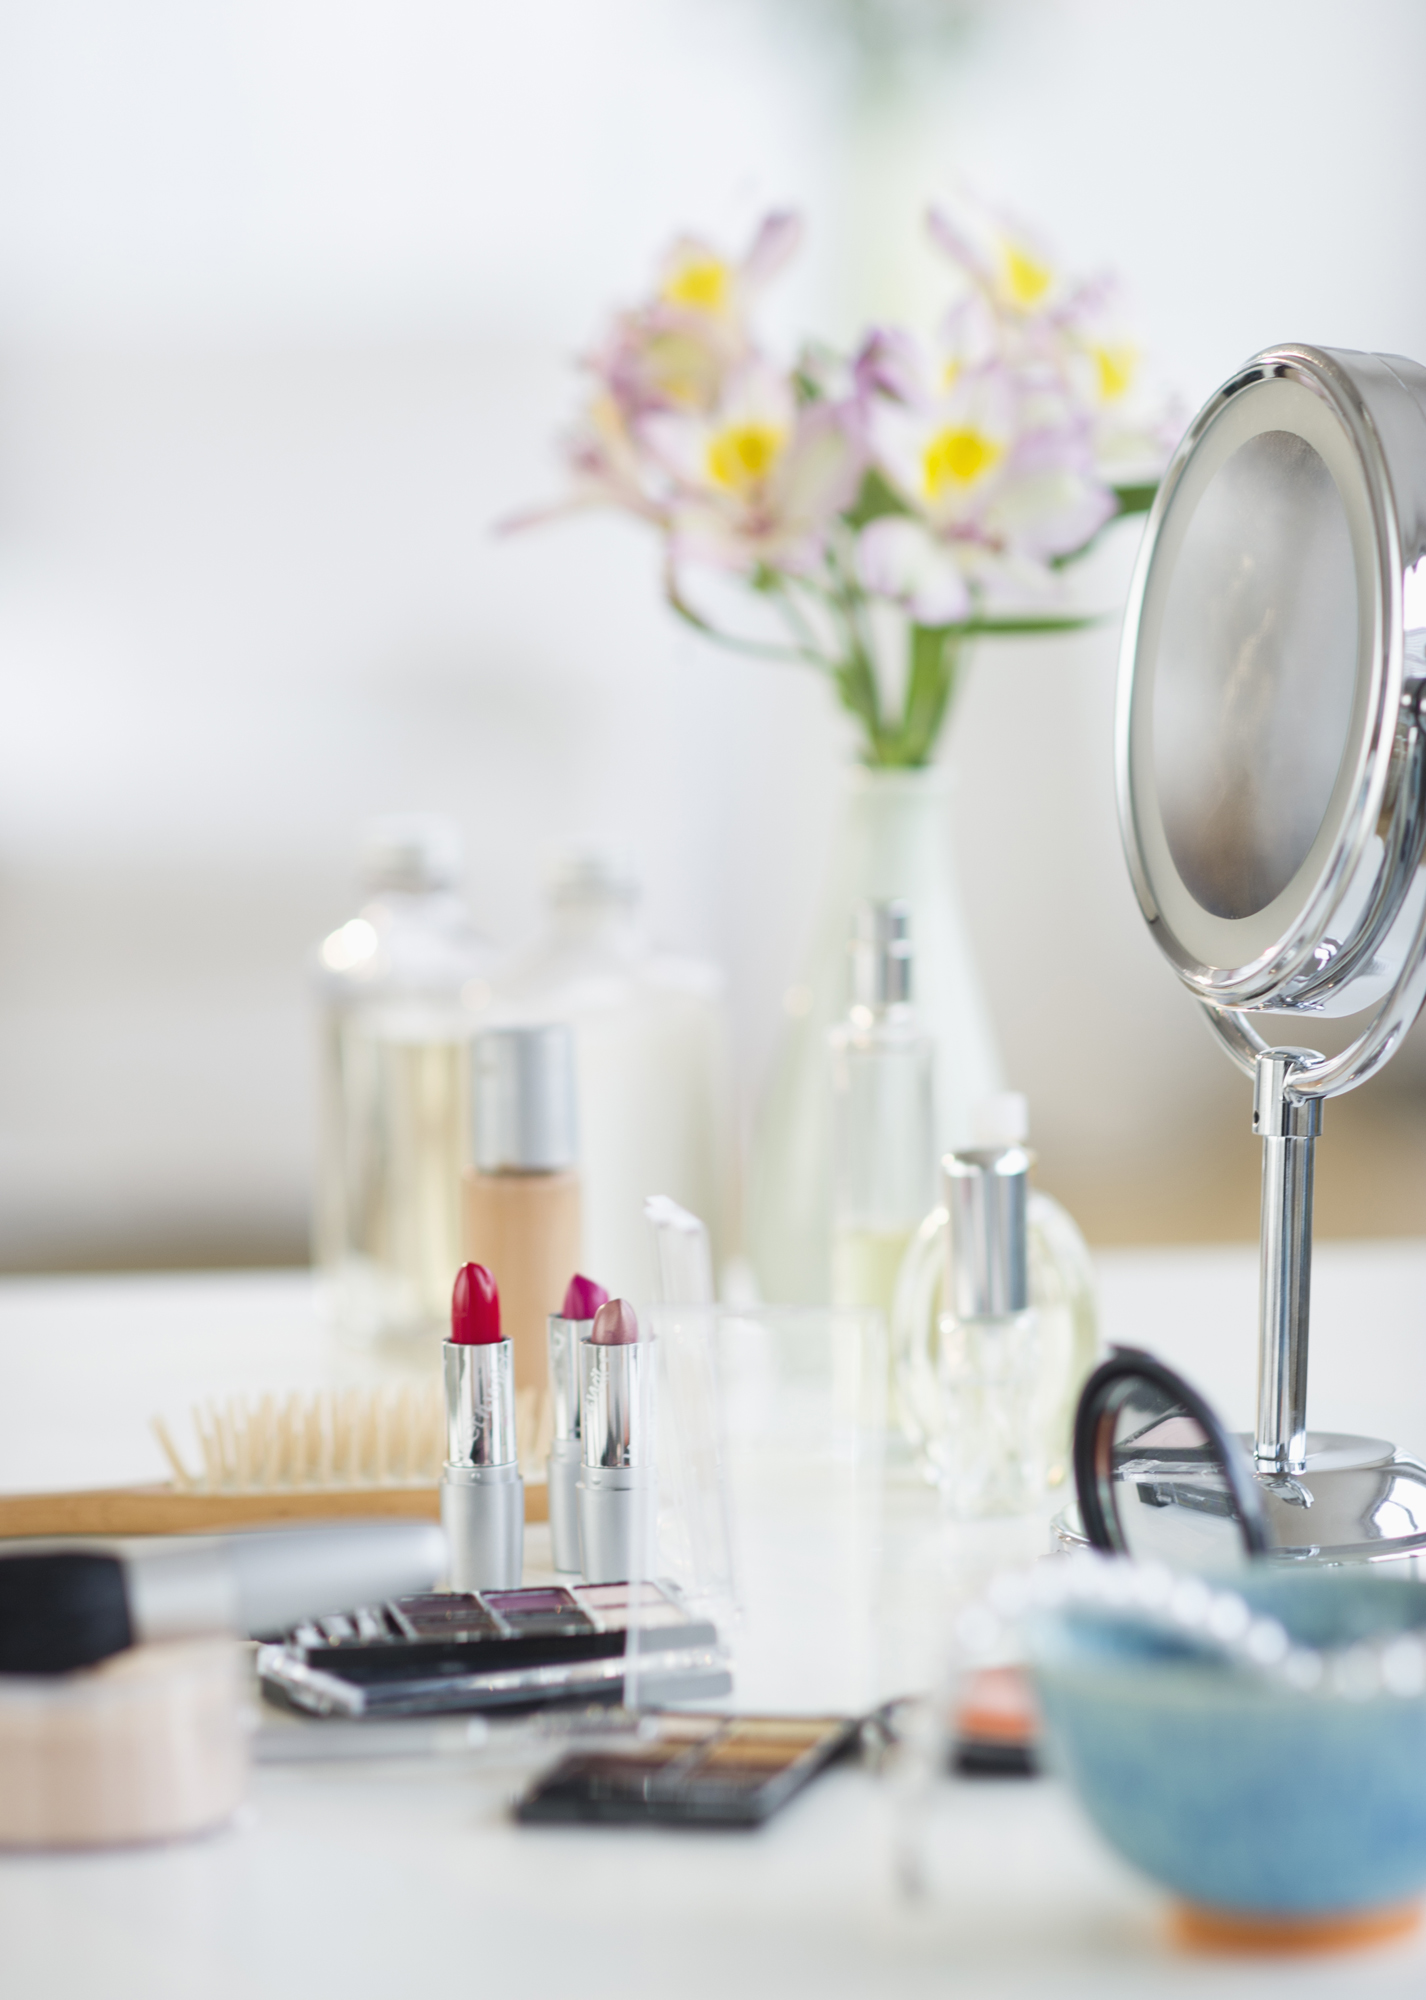 Makeup, cosmetics, mirror on white table